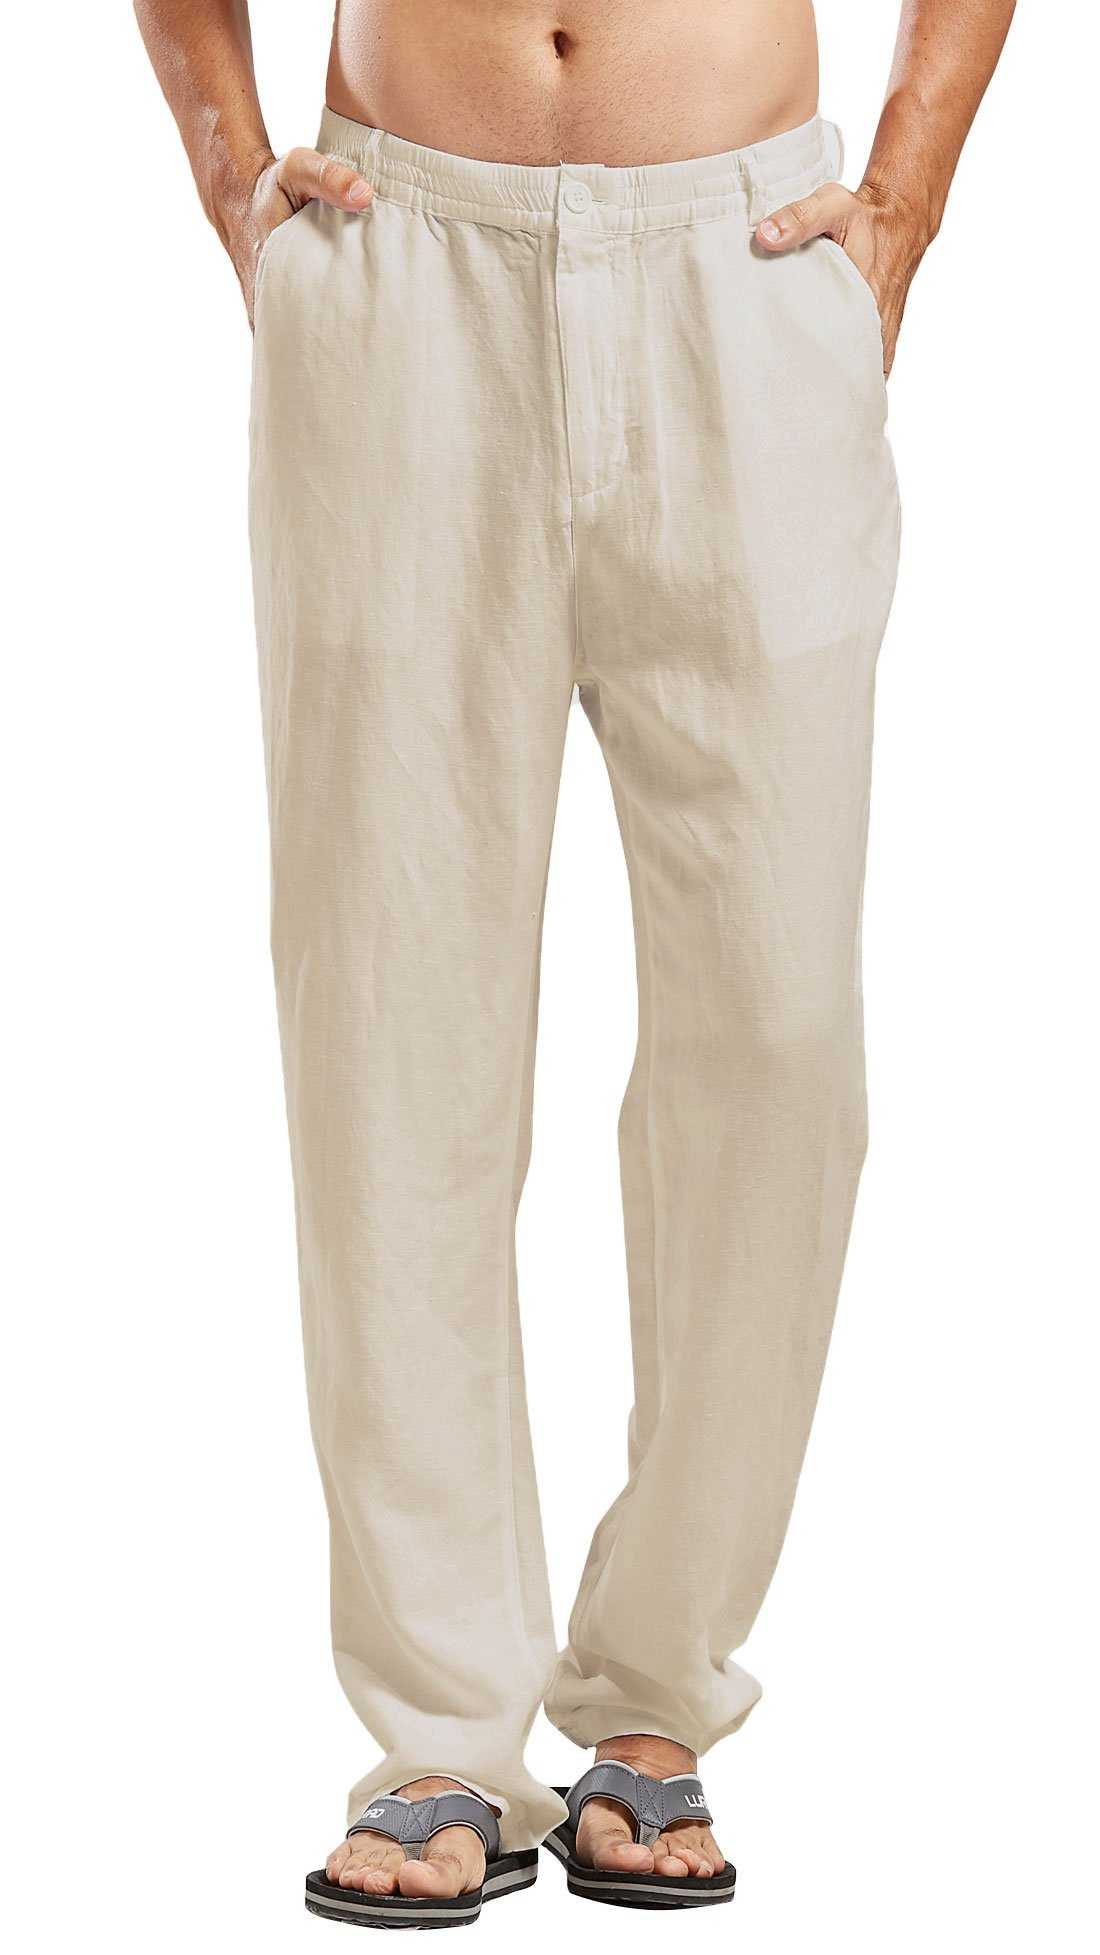 Chartou Man's Summer Casual Stretched Waist Loose Fit Linen Beach Pants (X-Small, Beige)